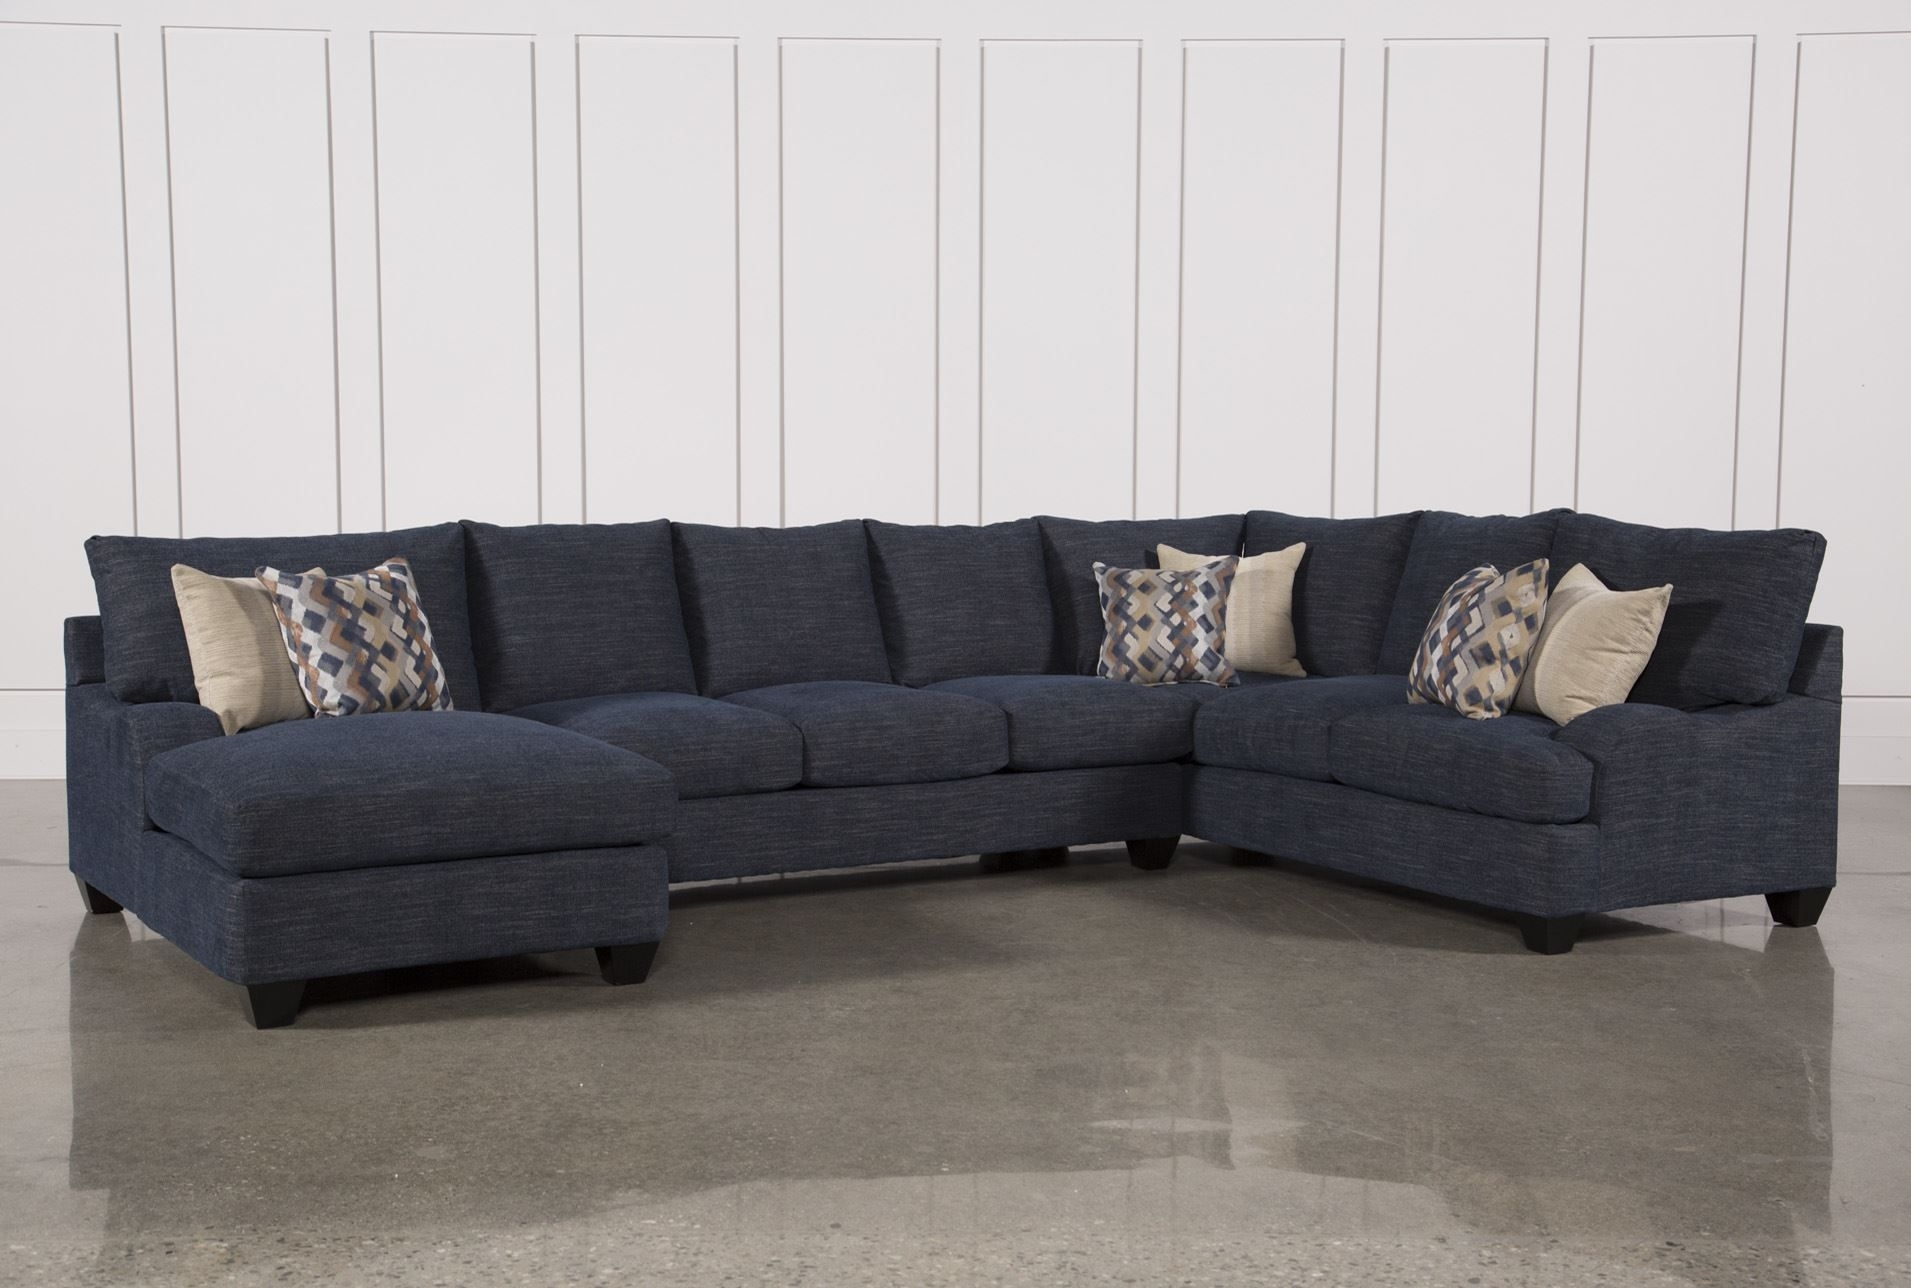 Sierra Down 3 Piece Sectional W/laf Chaise   Sofas And Sectionals With Adeline 3 Piece Sectionals (Image 24 of 25)